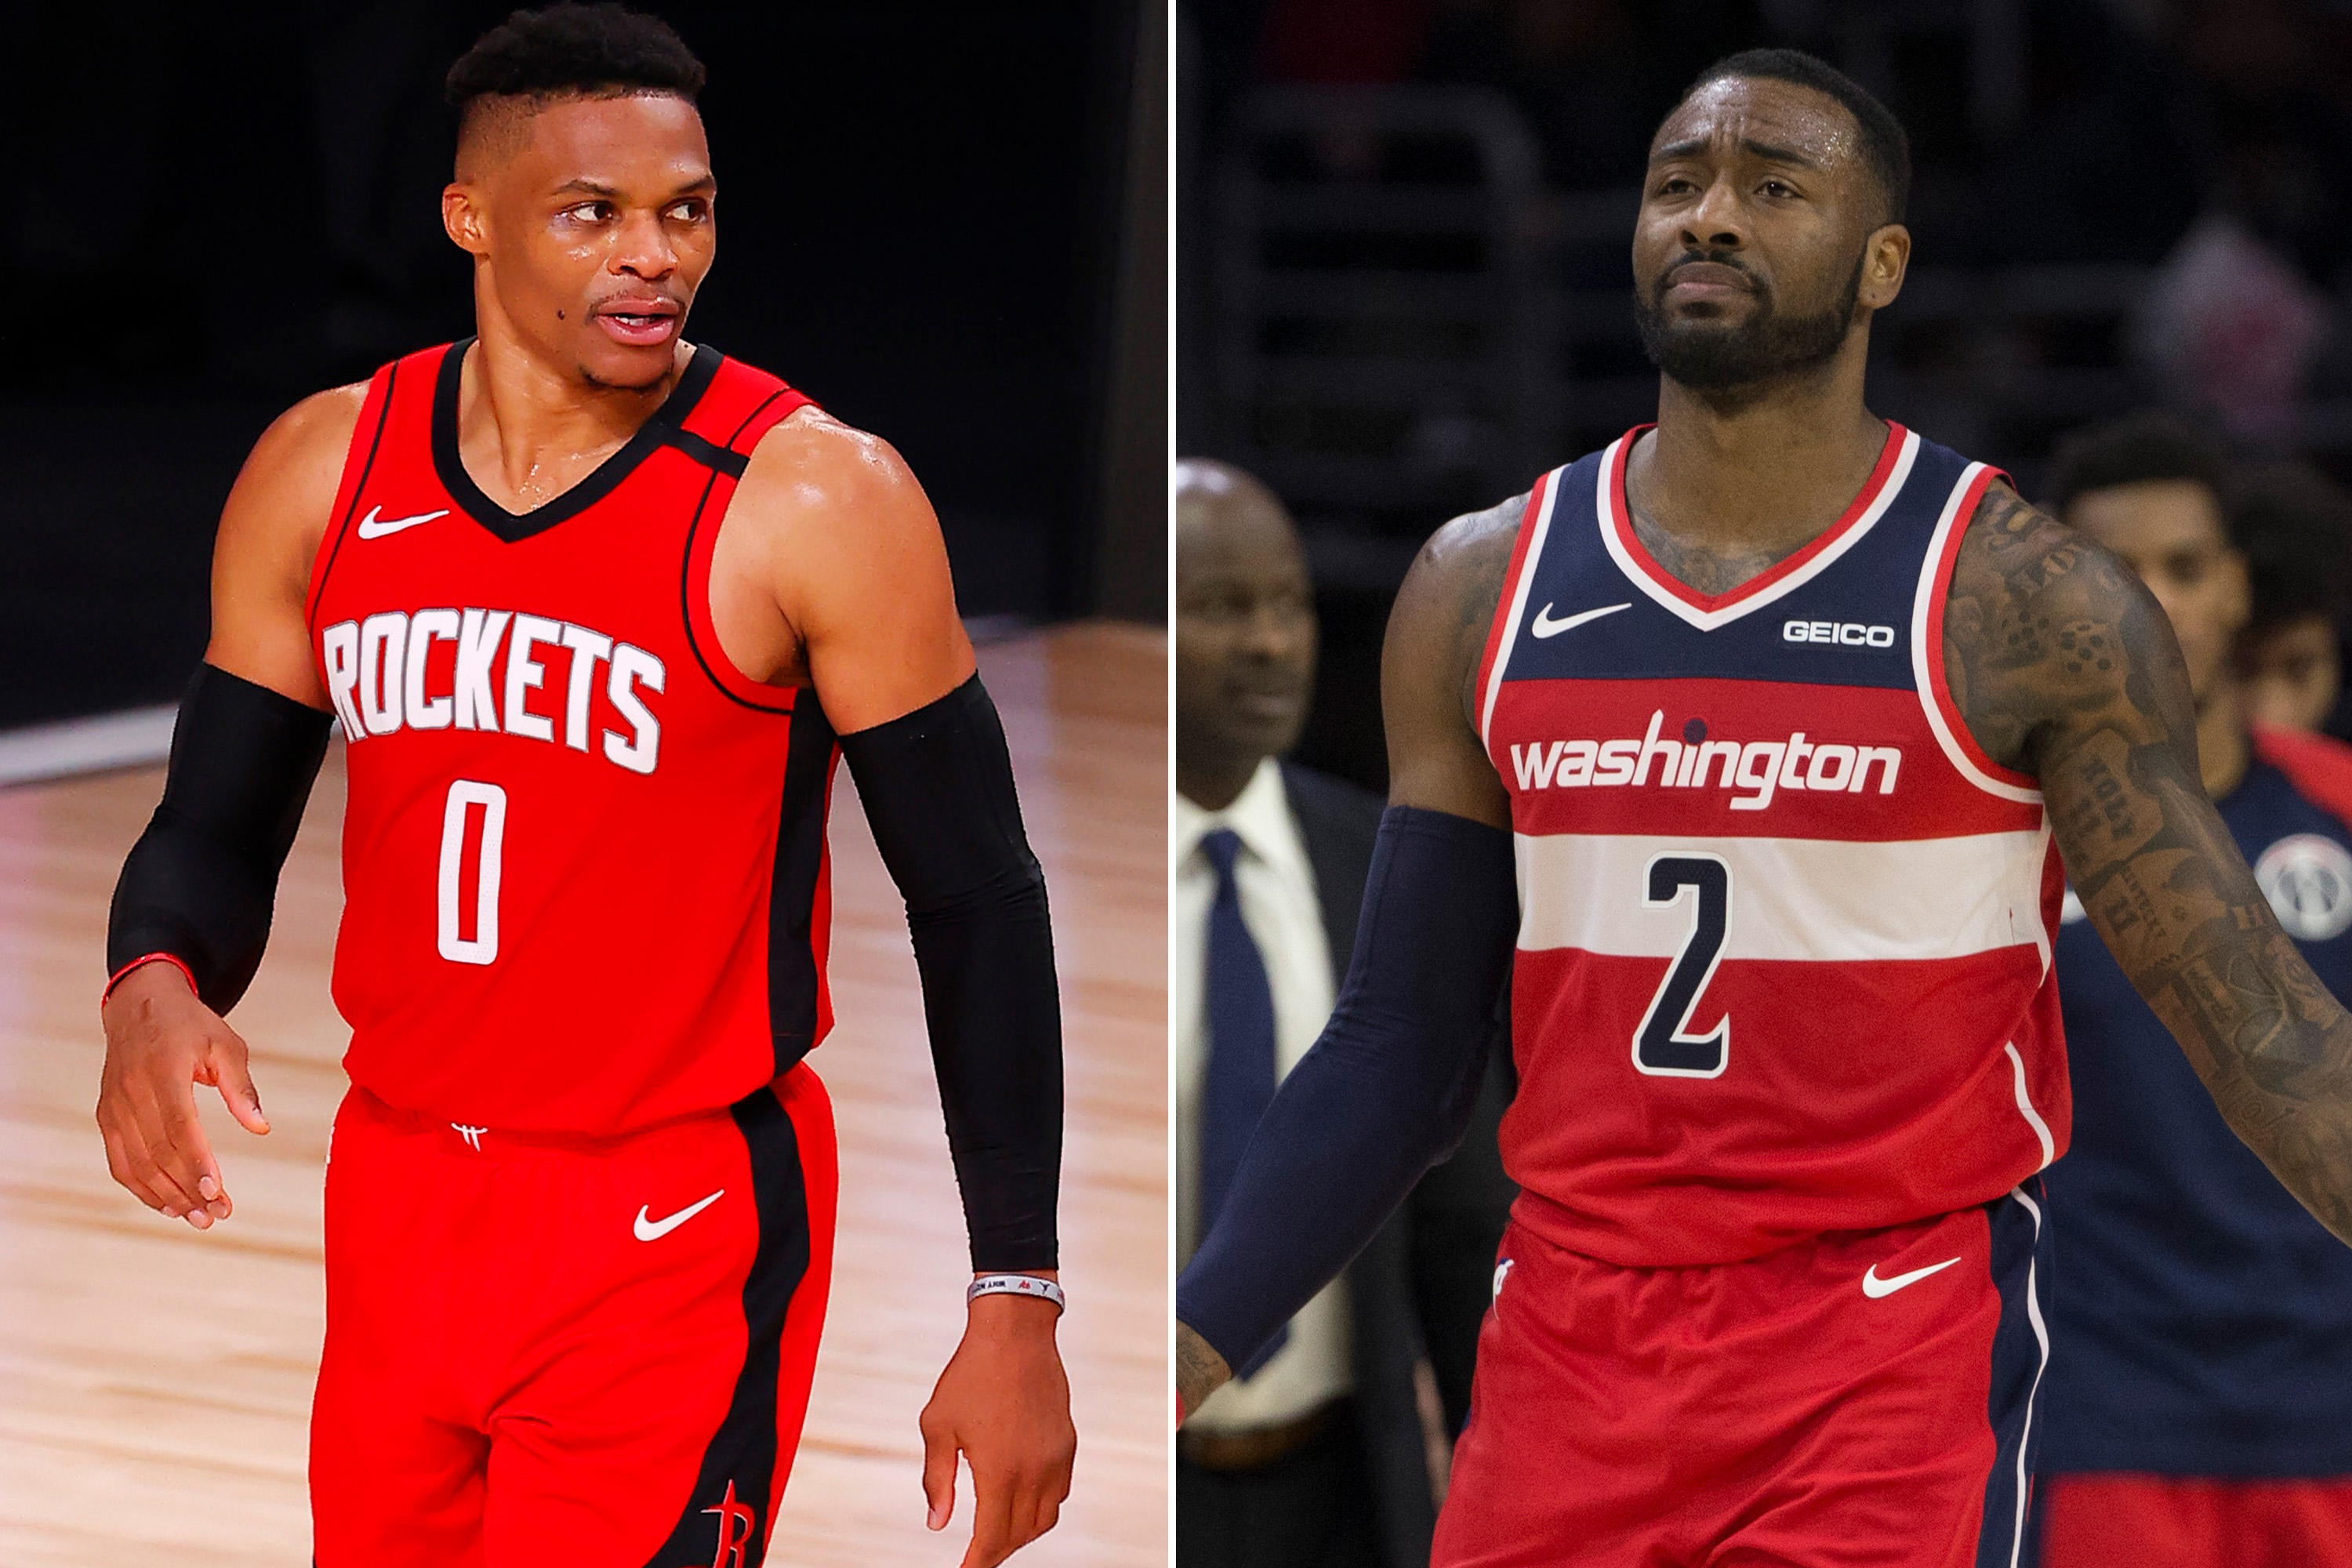 Rockets have talked Russell Westbrook-John Wall trade with Wizards